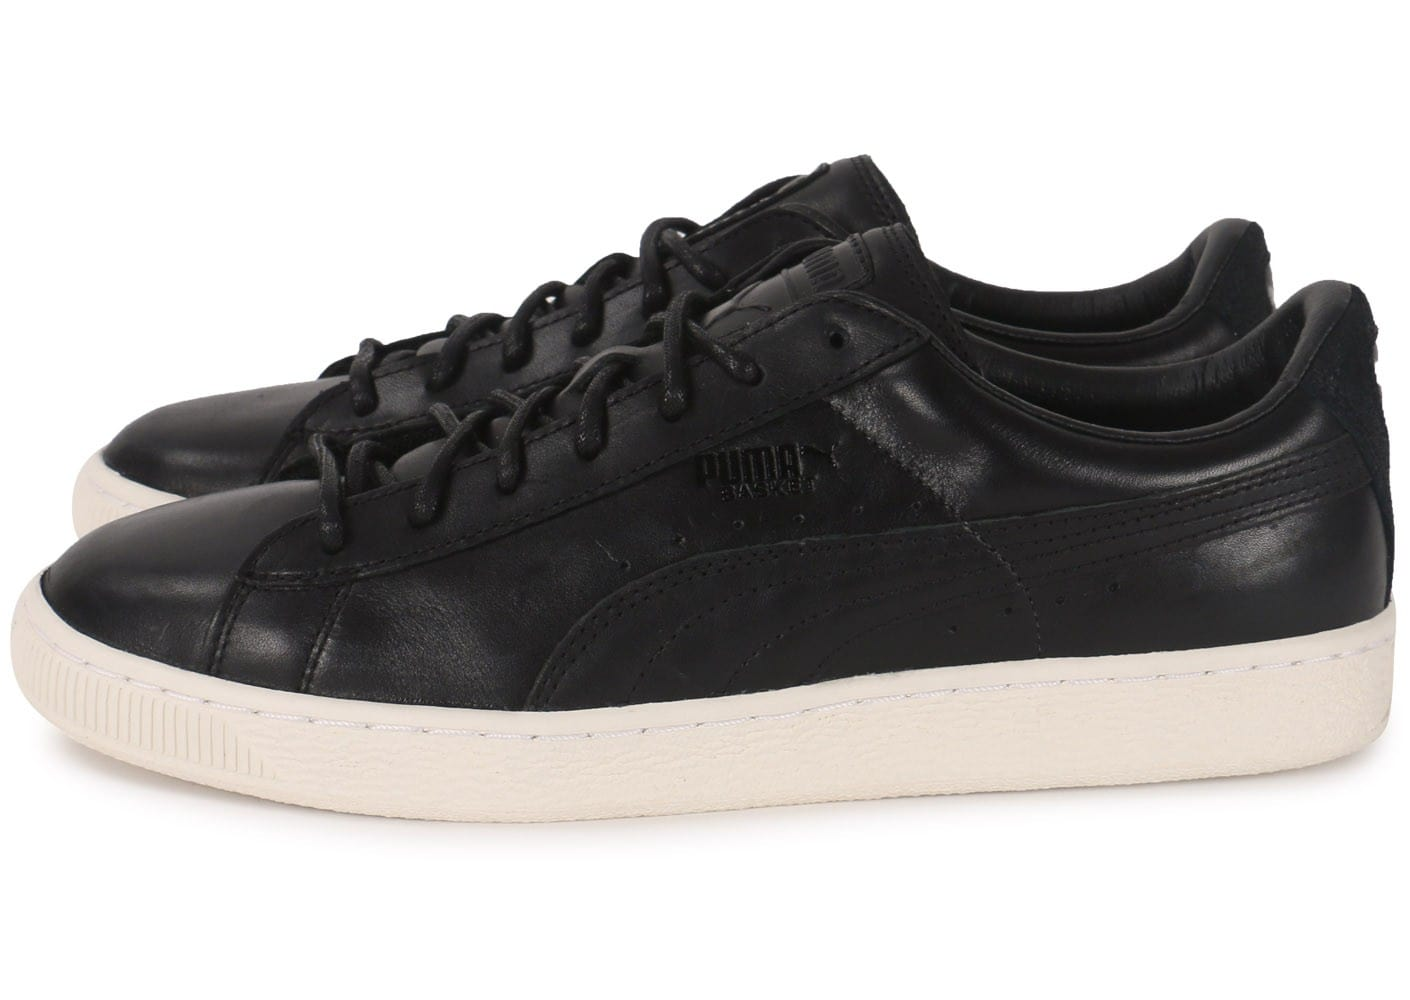 Chaussures Puma Citi Series noires Casual homme